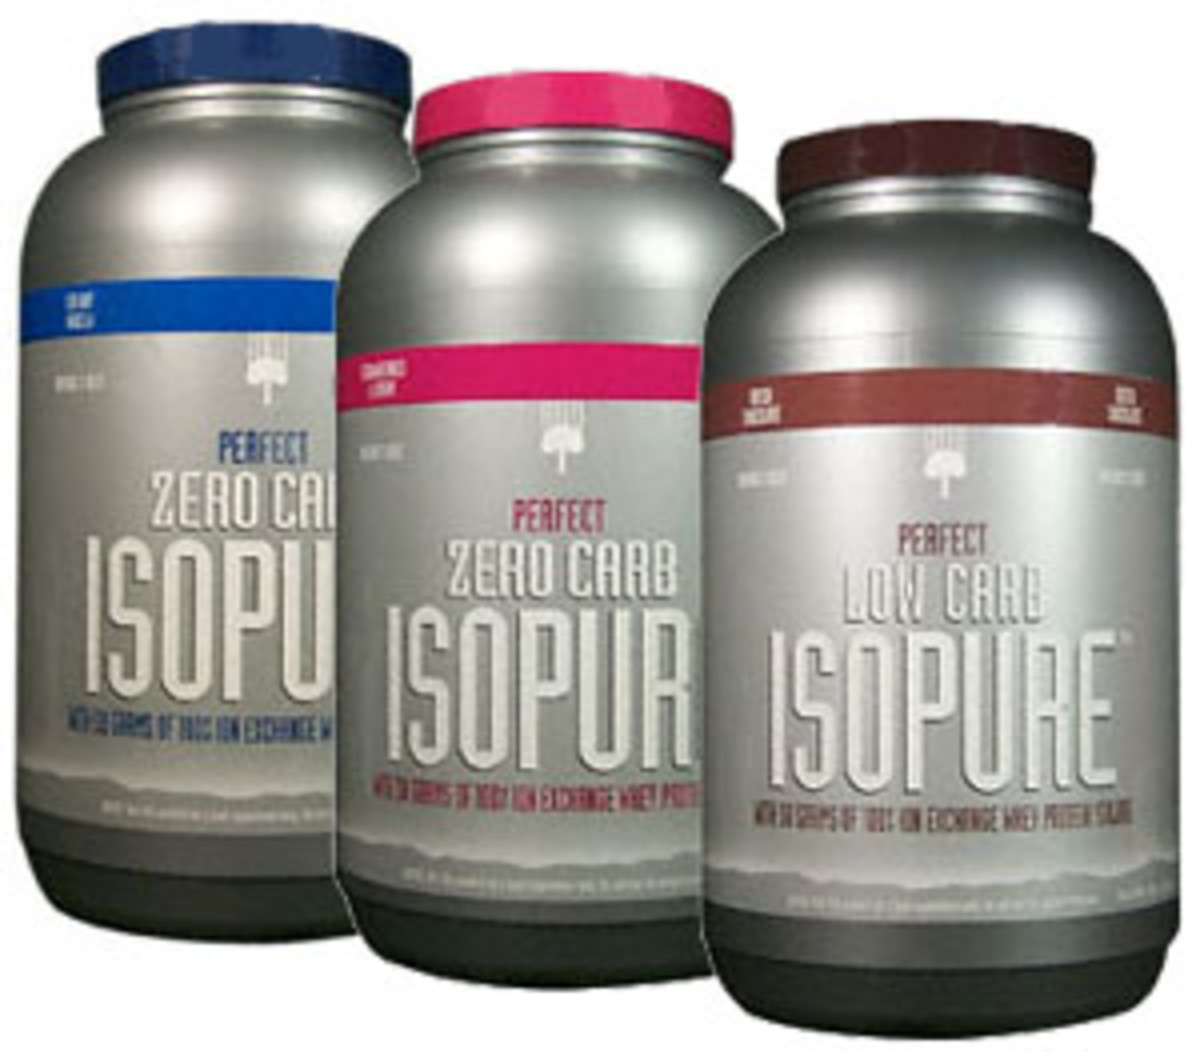 Isopure, Zero-Carb & Low-Carb Protein Powders.